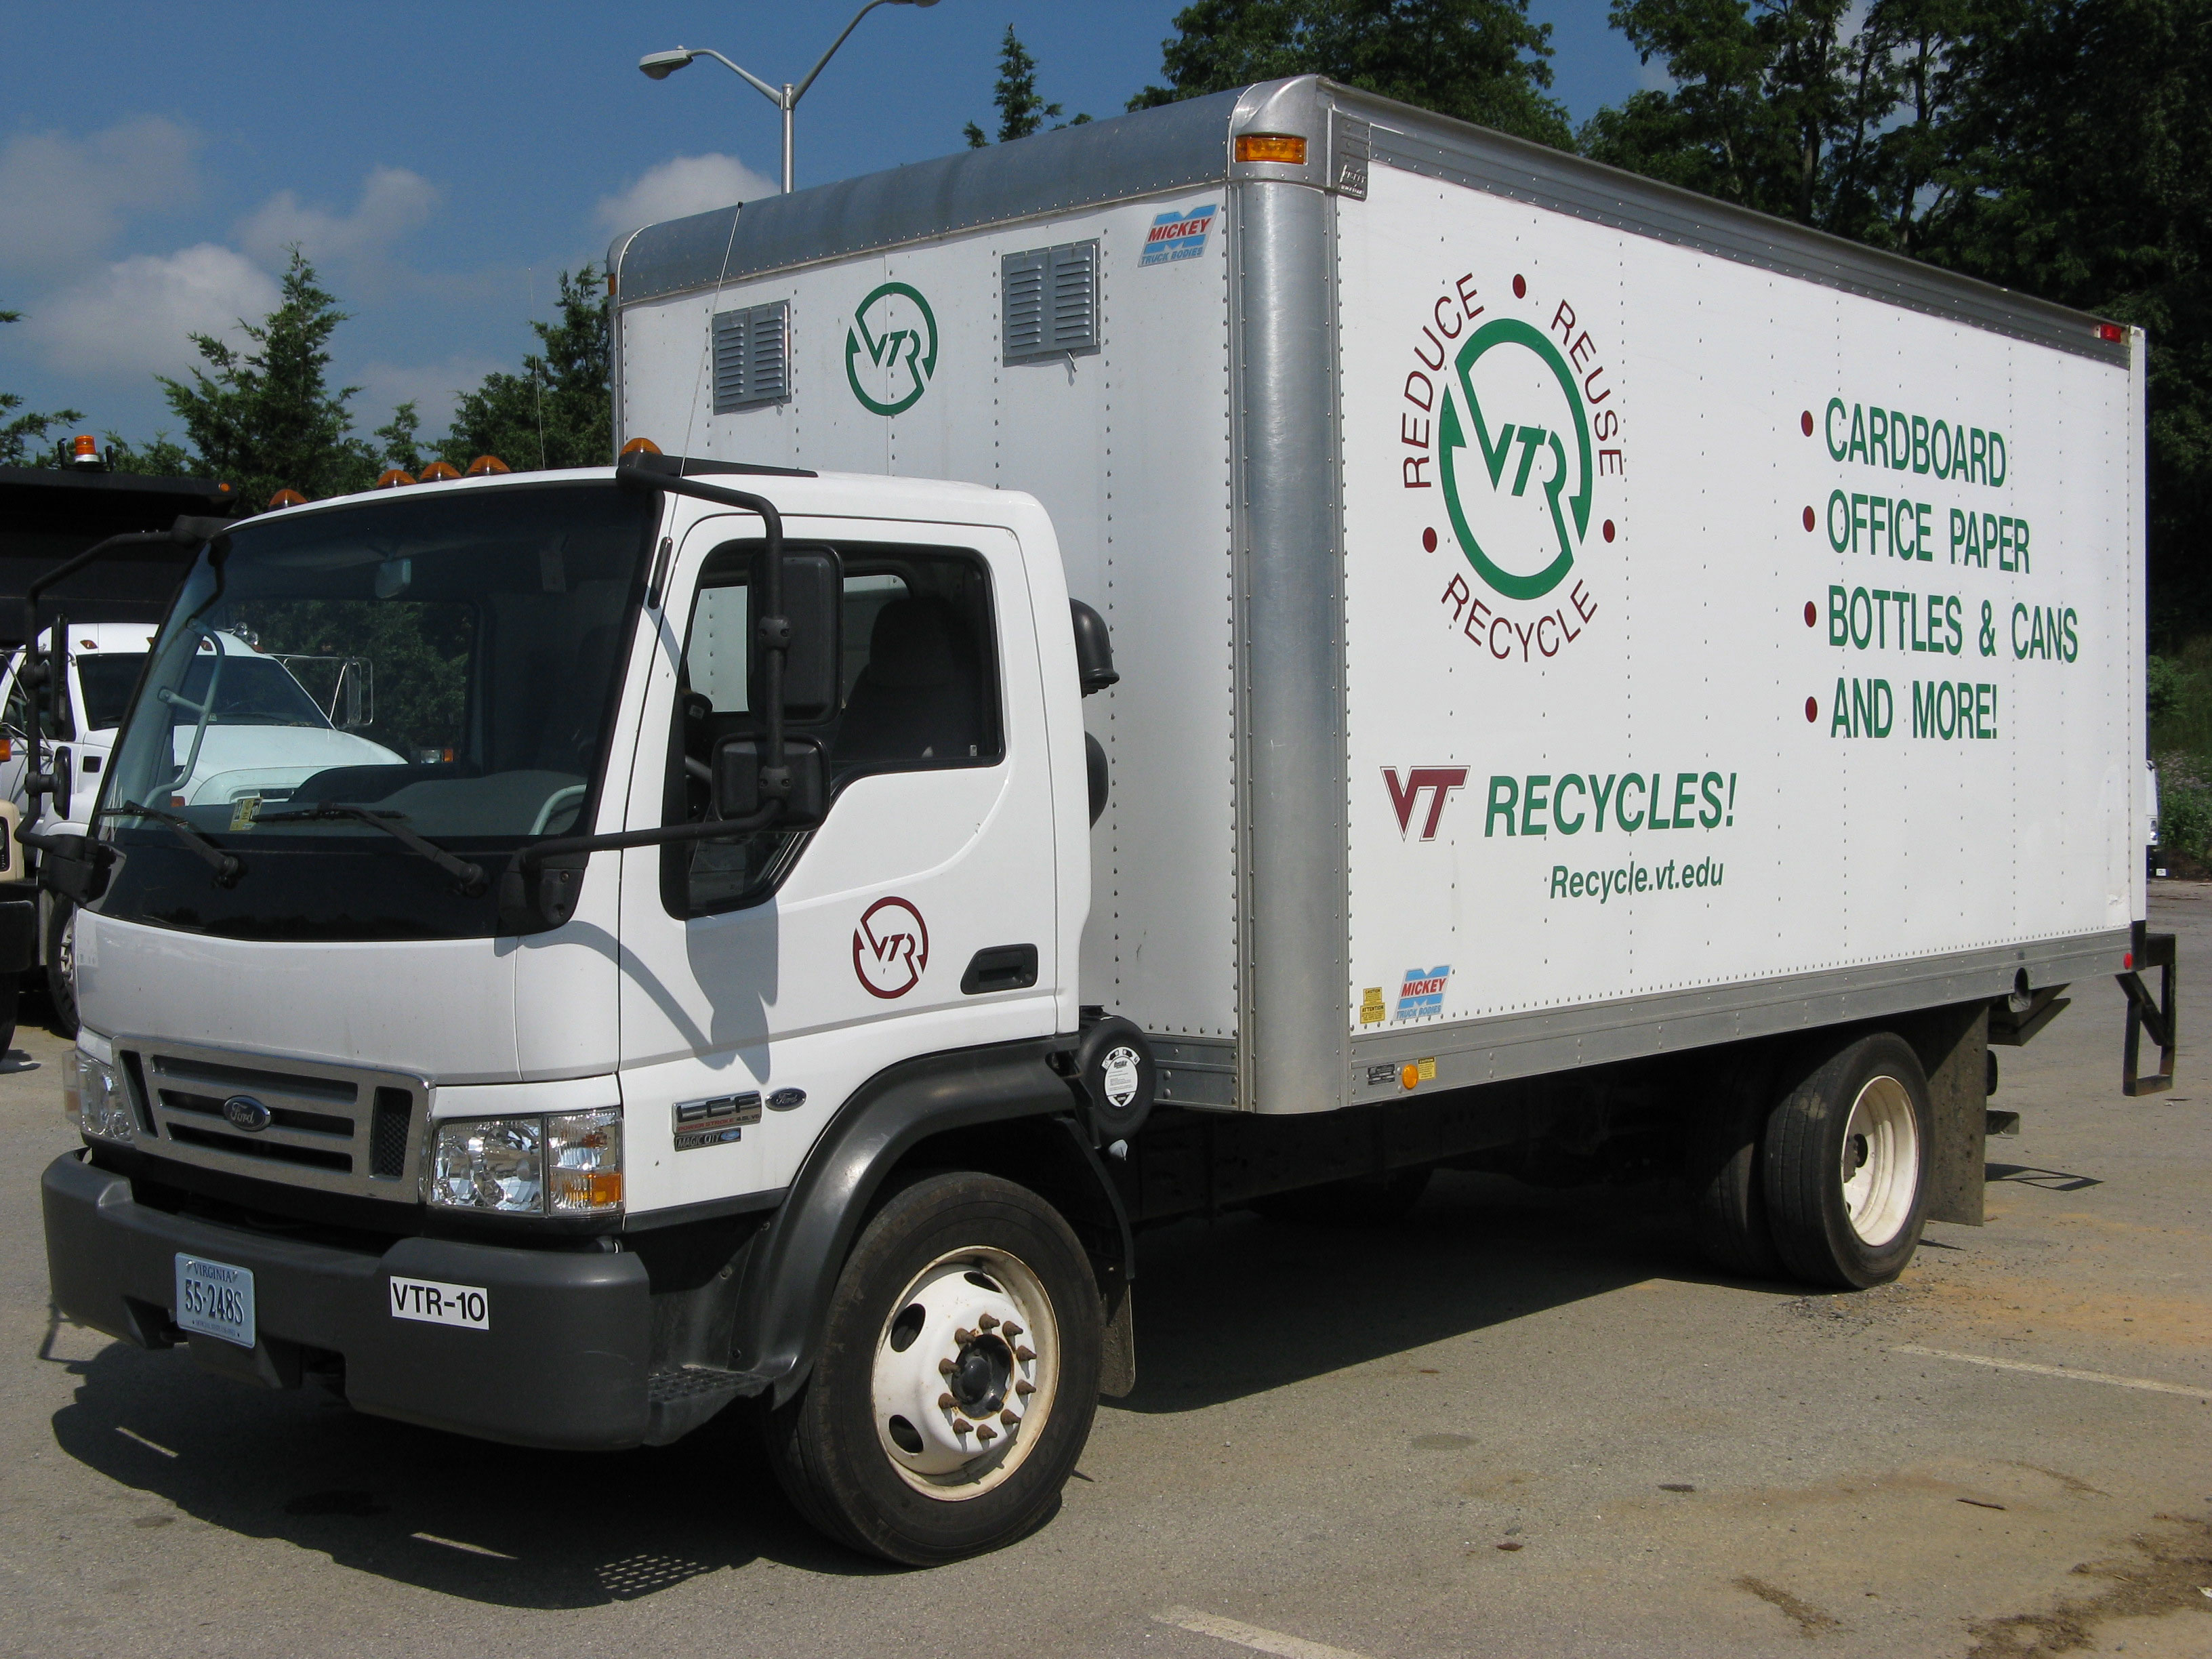 A Virginia Tech recycling truck